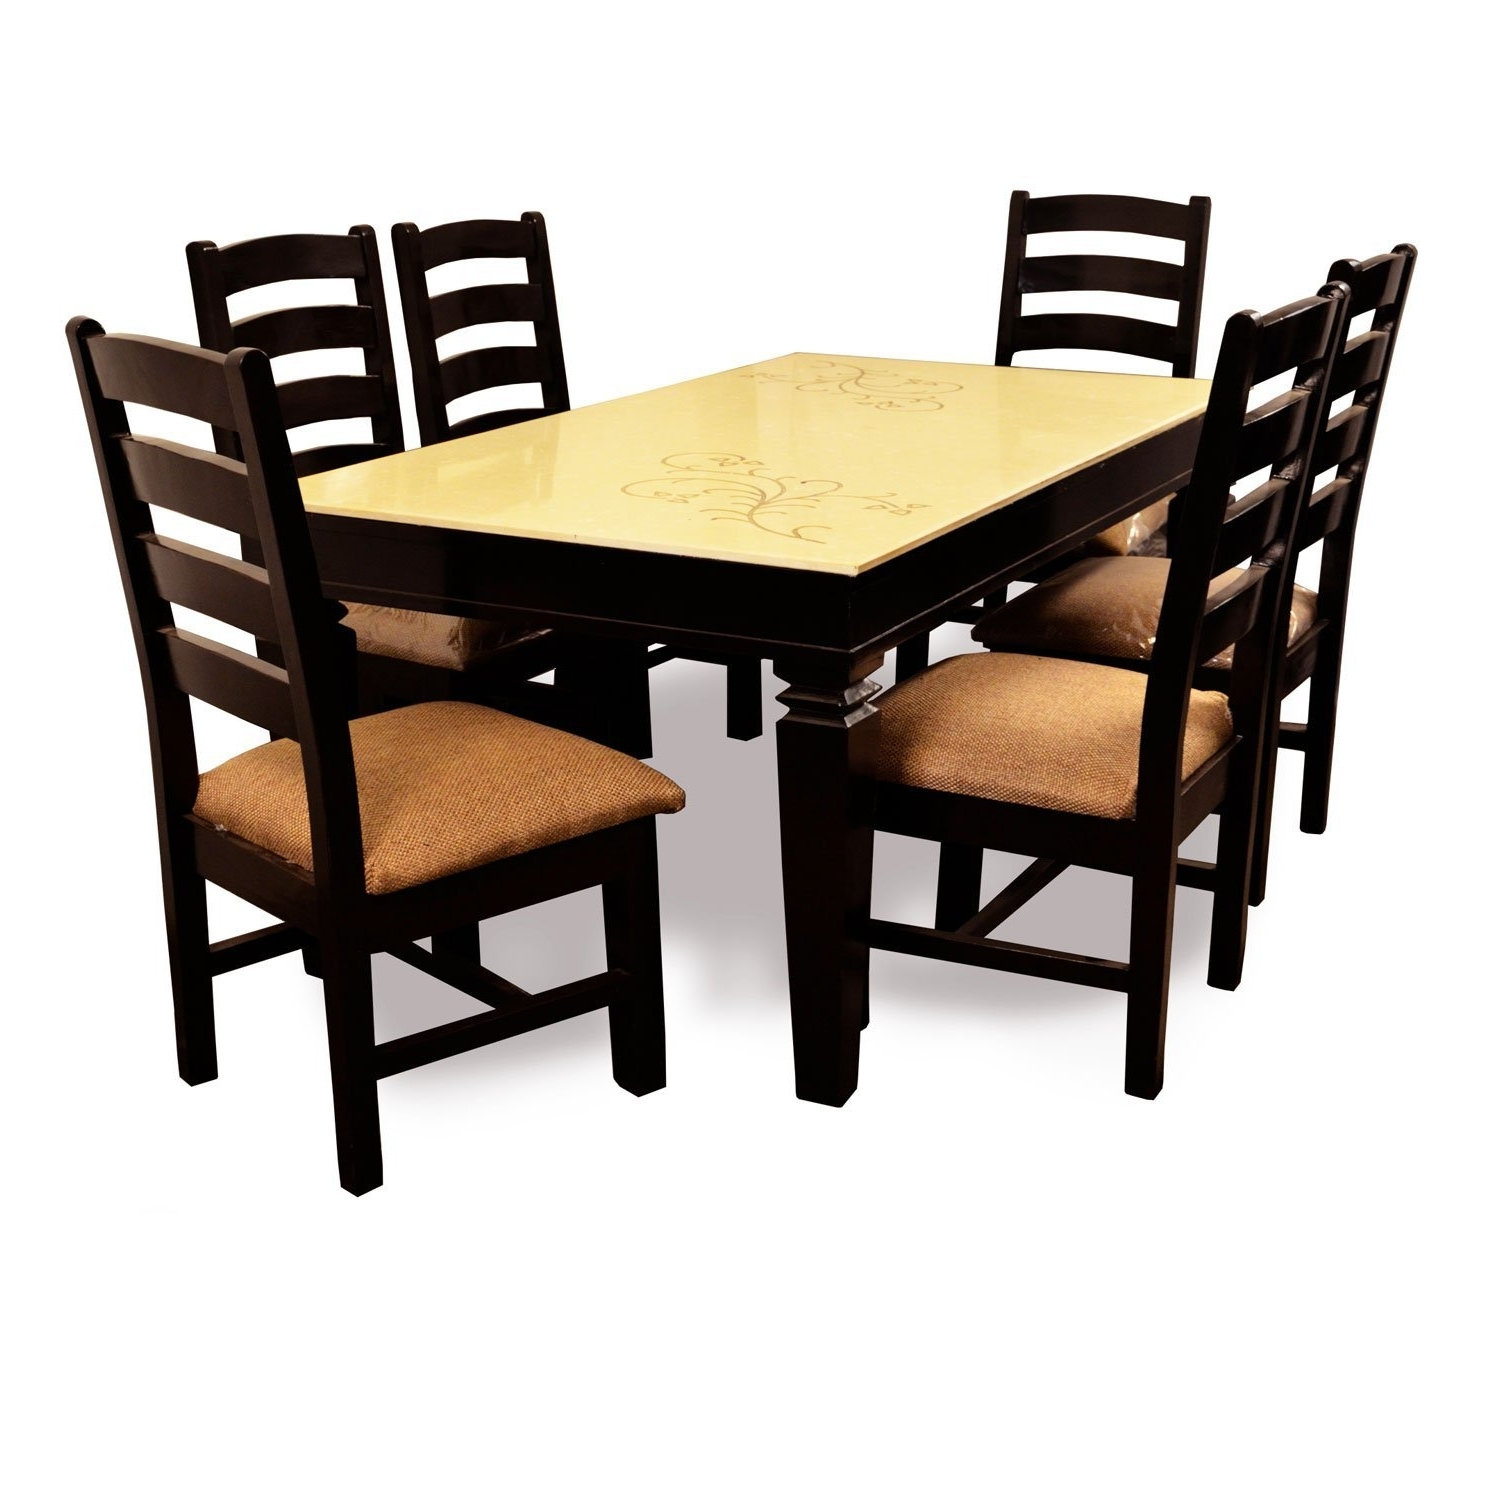 Newest 6 Seater Dining Tables Pertaining To 6 Seater Dining Table, Six Seater Dining Table, Stylish Dining Table (Gallery 1 of 25)